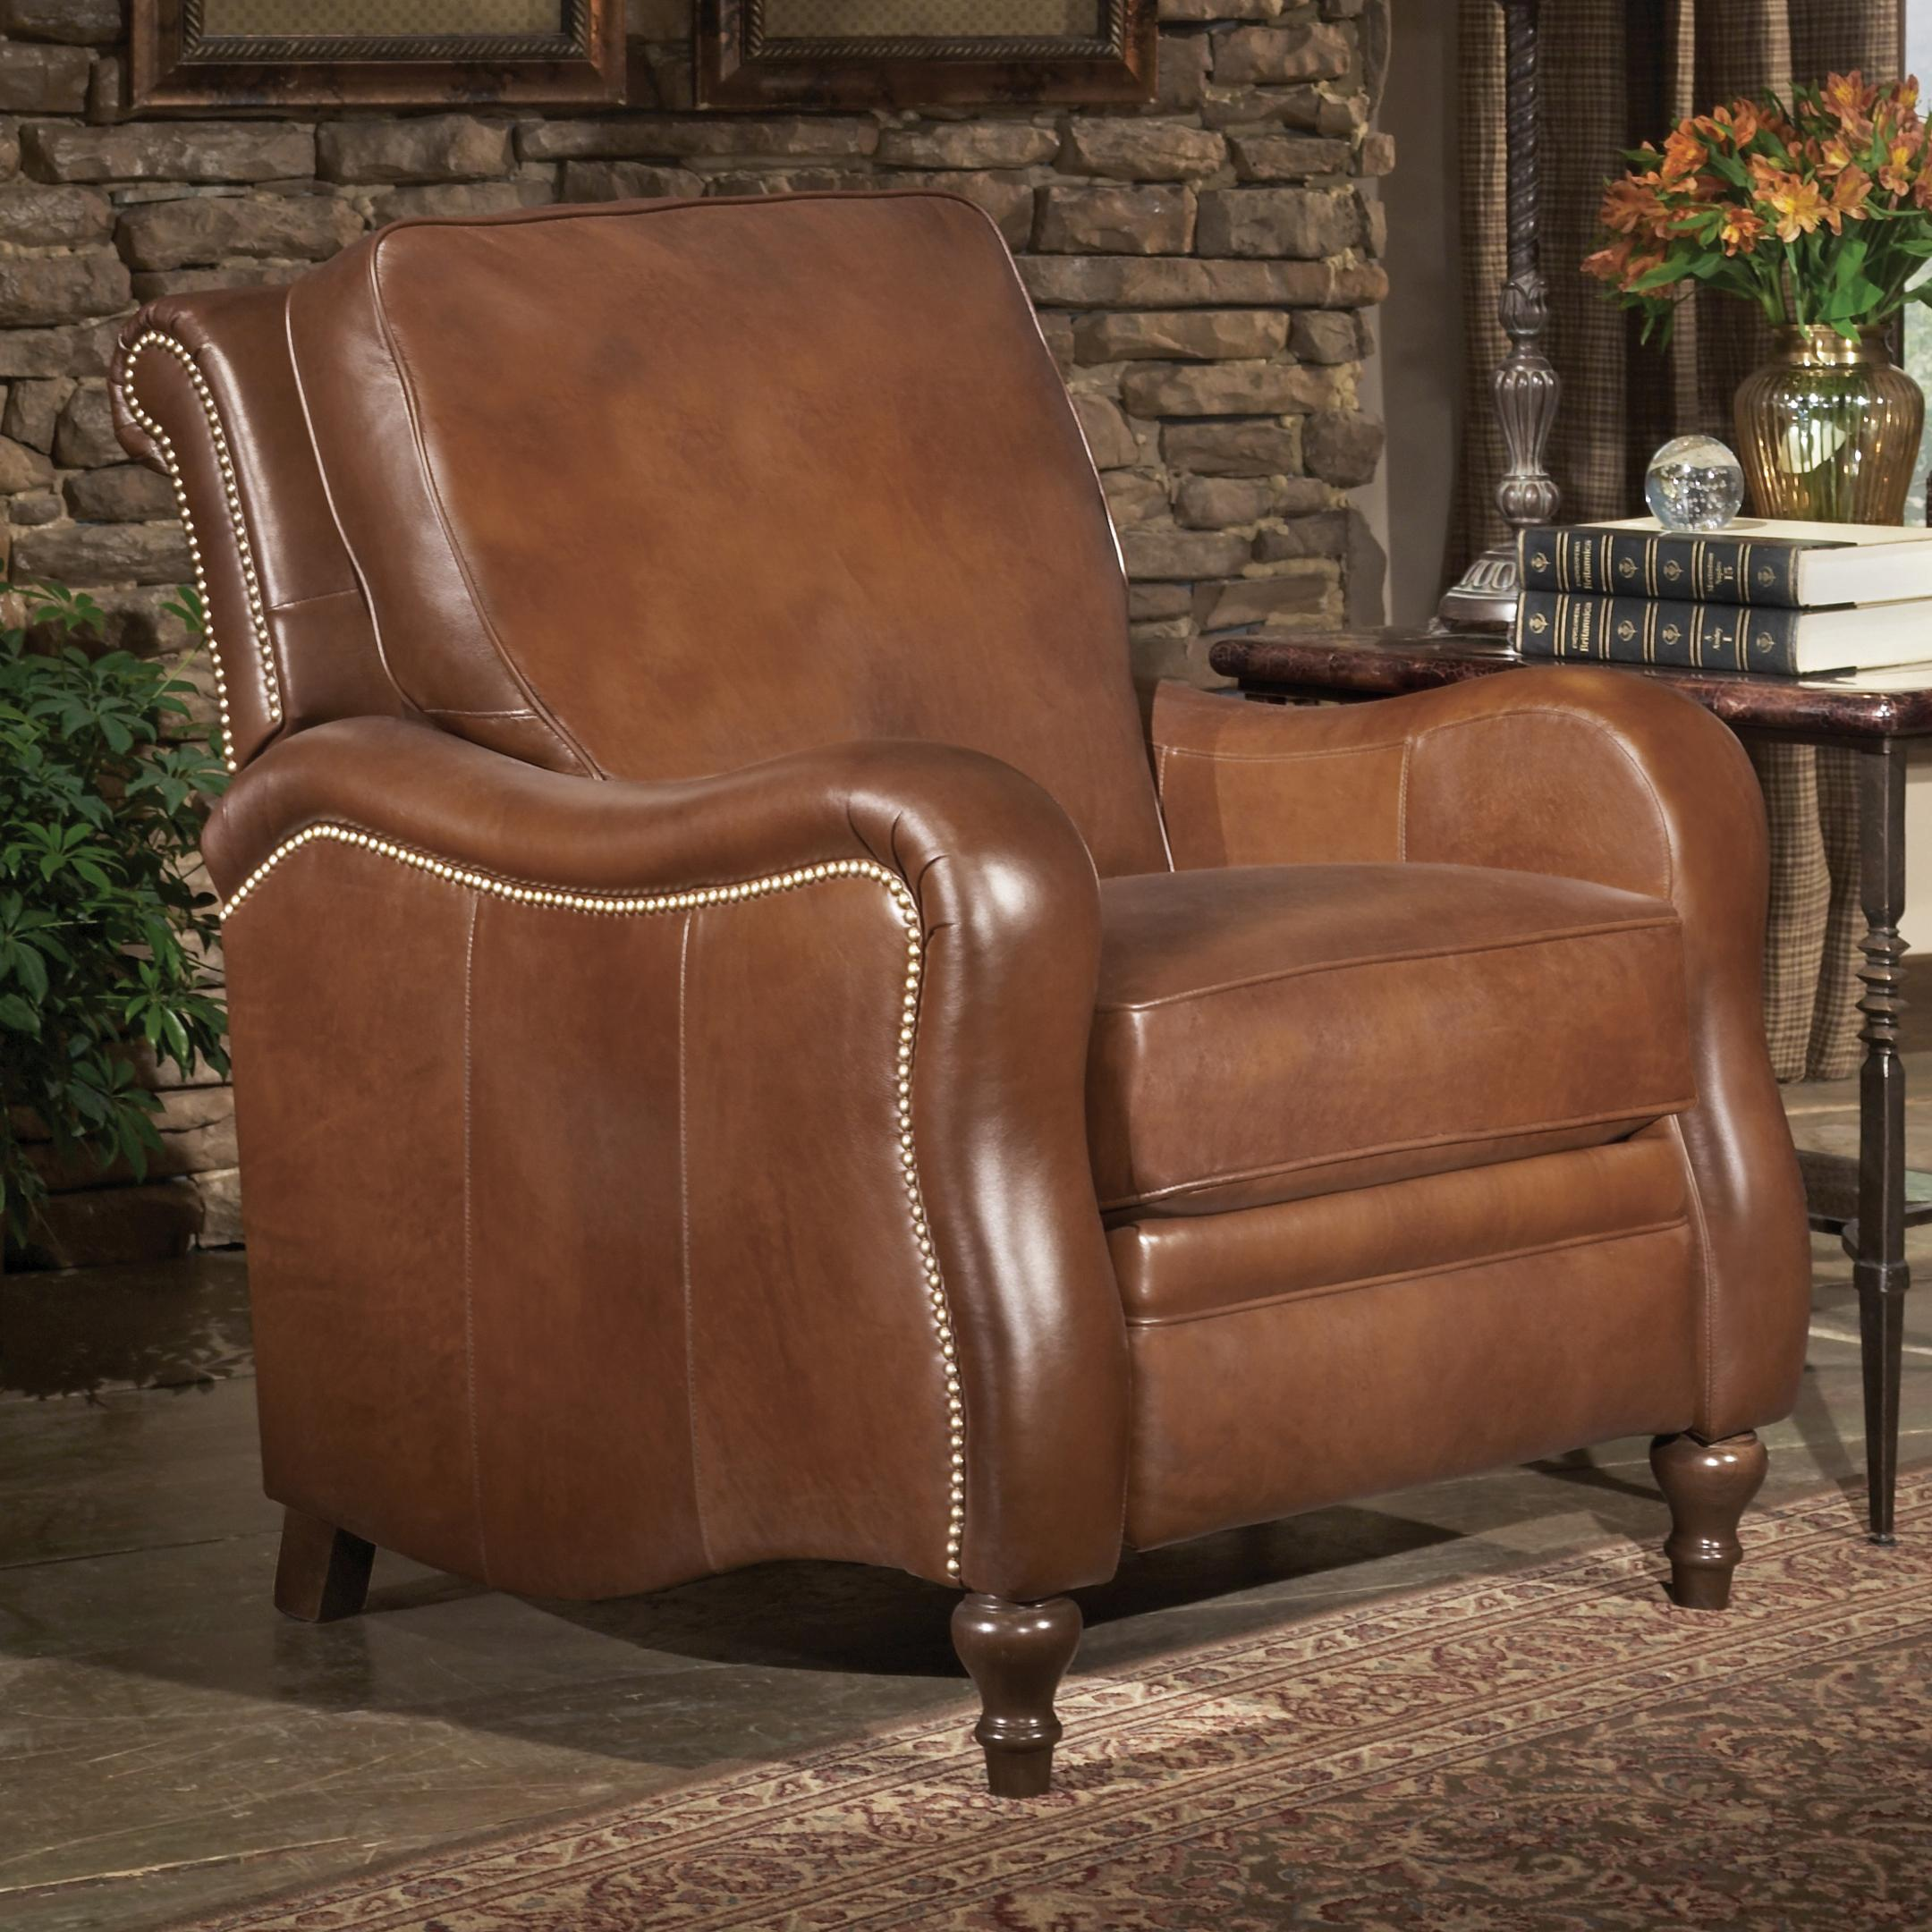 Smith brothers recliners traditional high leg recliner for Traditional sofas with legs